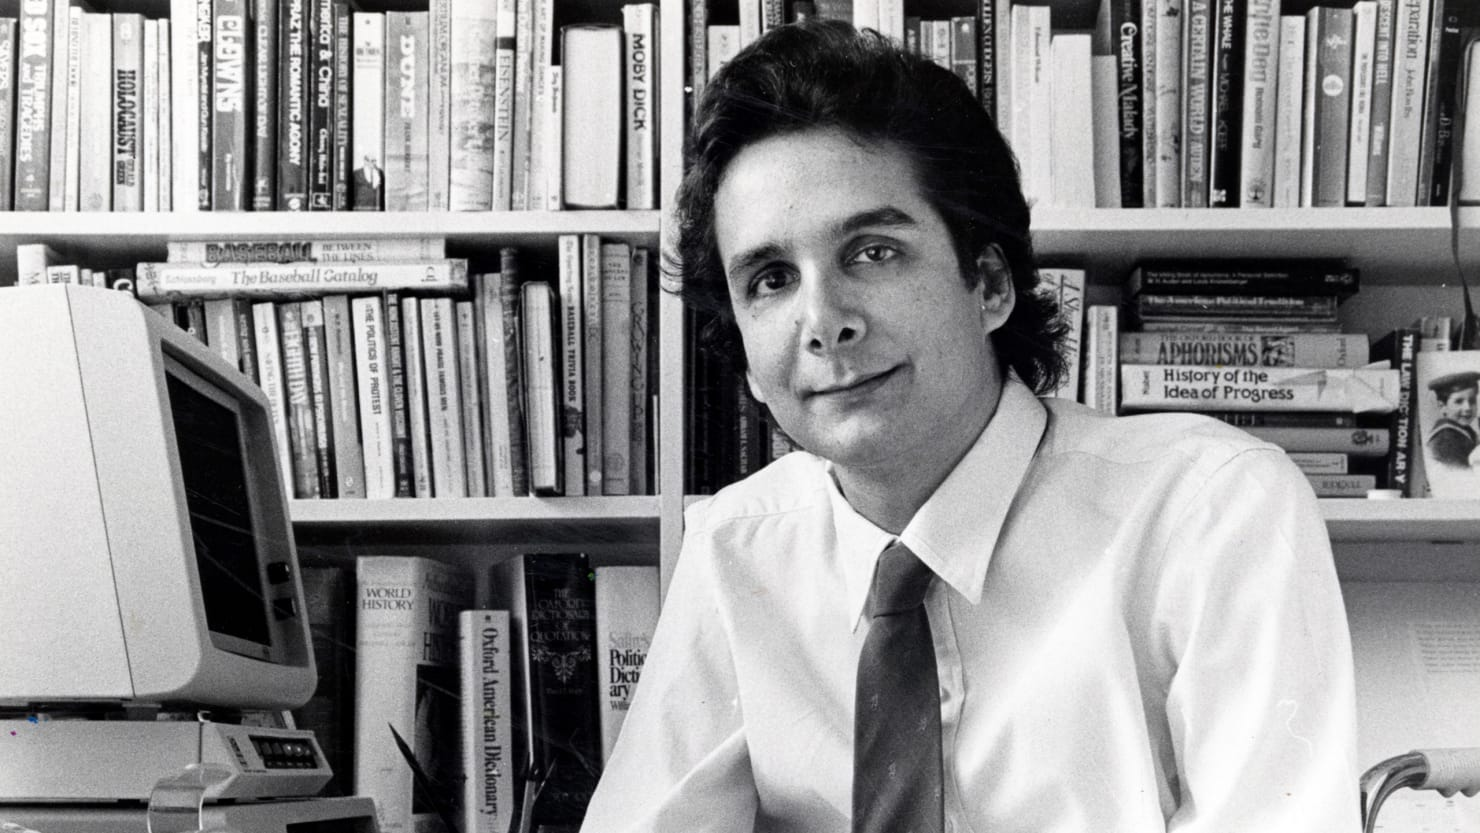 Charles Krauthammer's Quiet Contribution to Our Understanding of Bipolar Disease